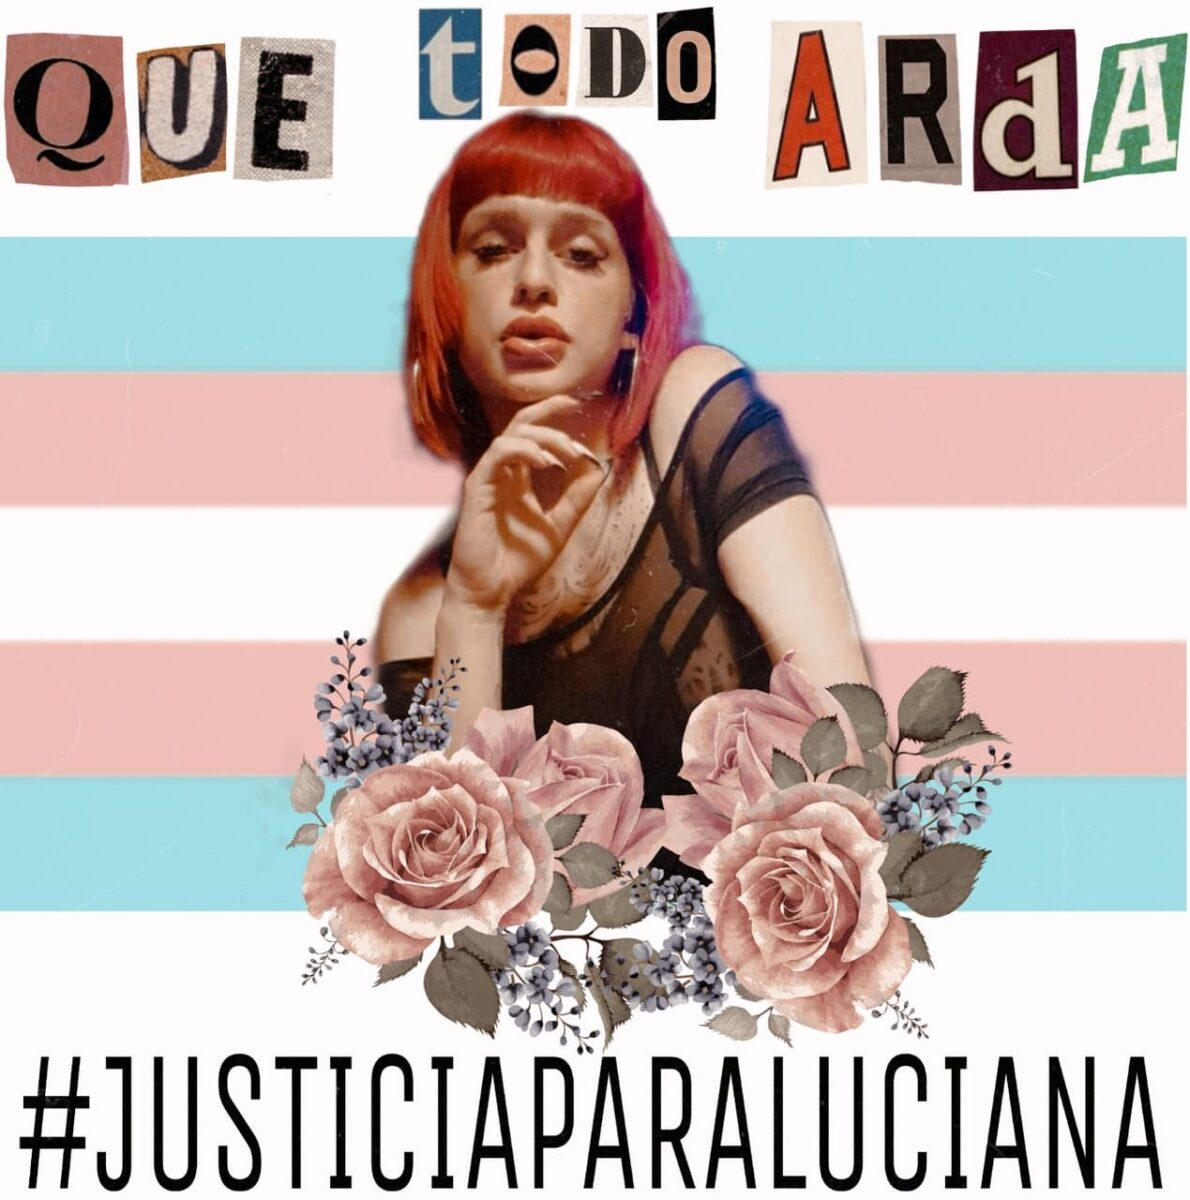 asesinatos trans colombia 2021 luciana